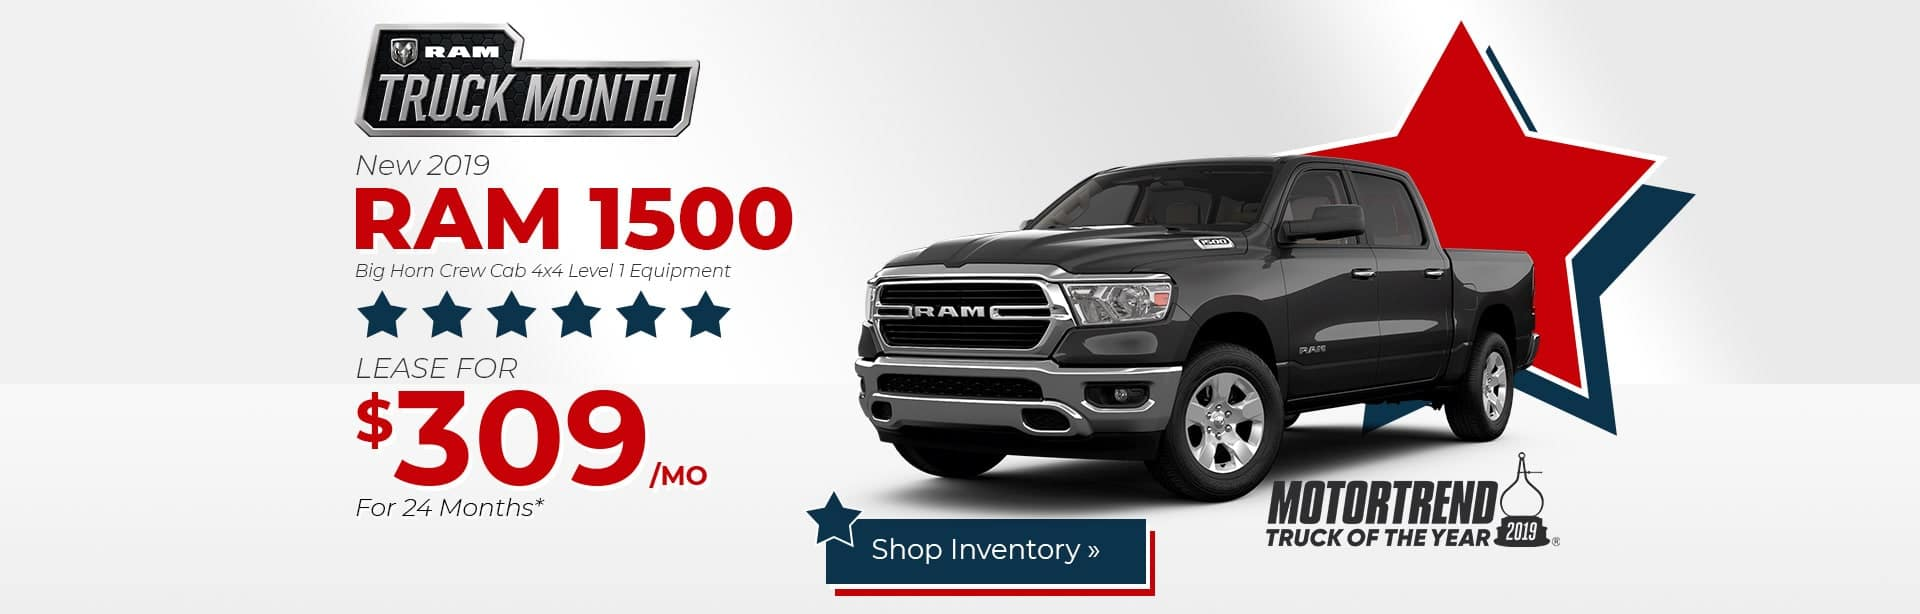 2019 Ram 1500 Big Horn Lease Special near Indianapolis, Indiana.